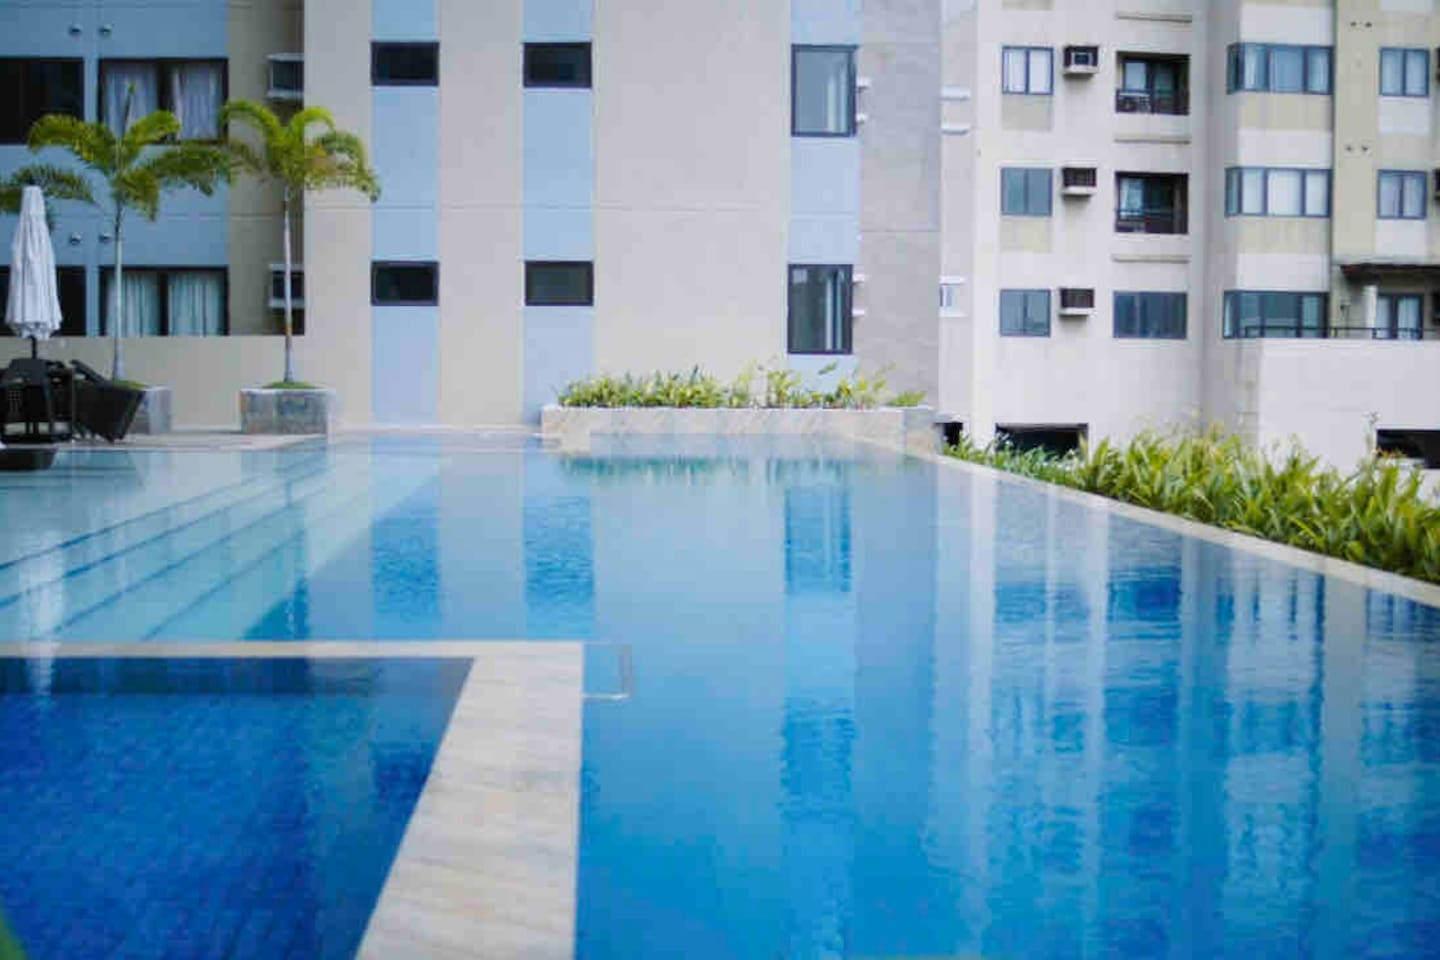 Infinito pool Located @ 6th floor same level of my unit.